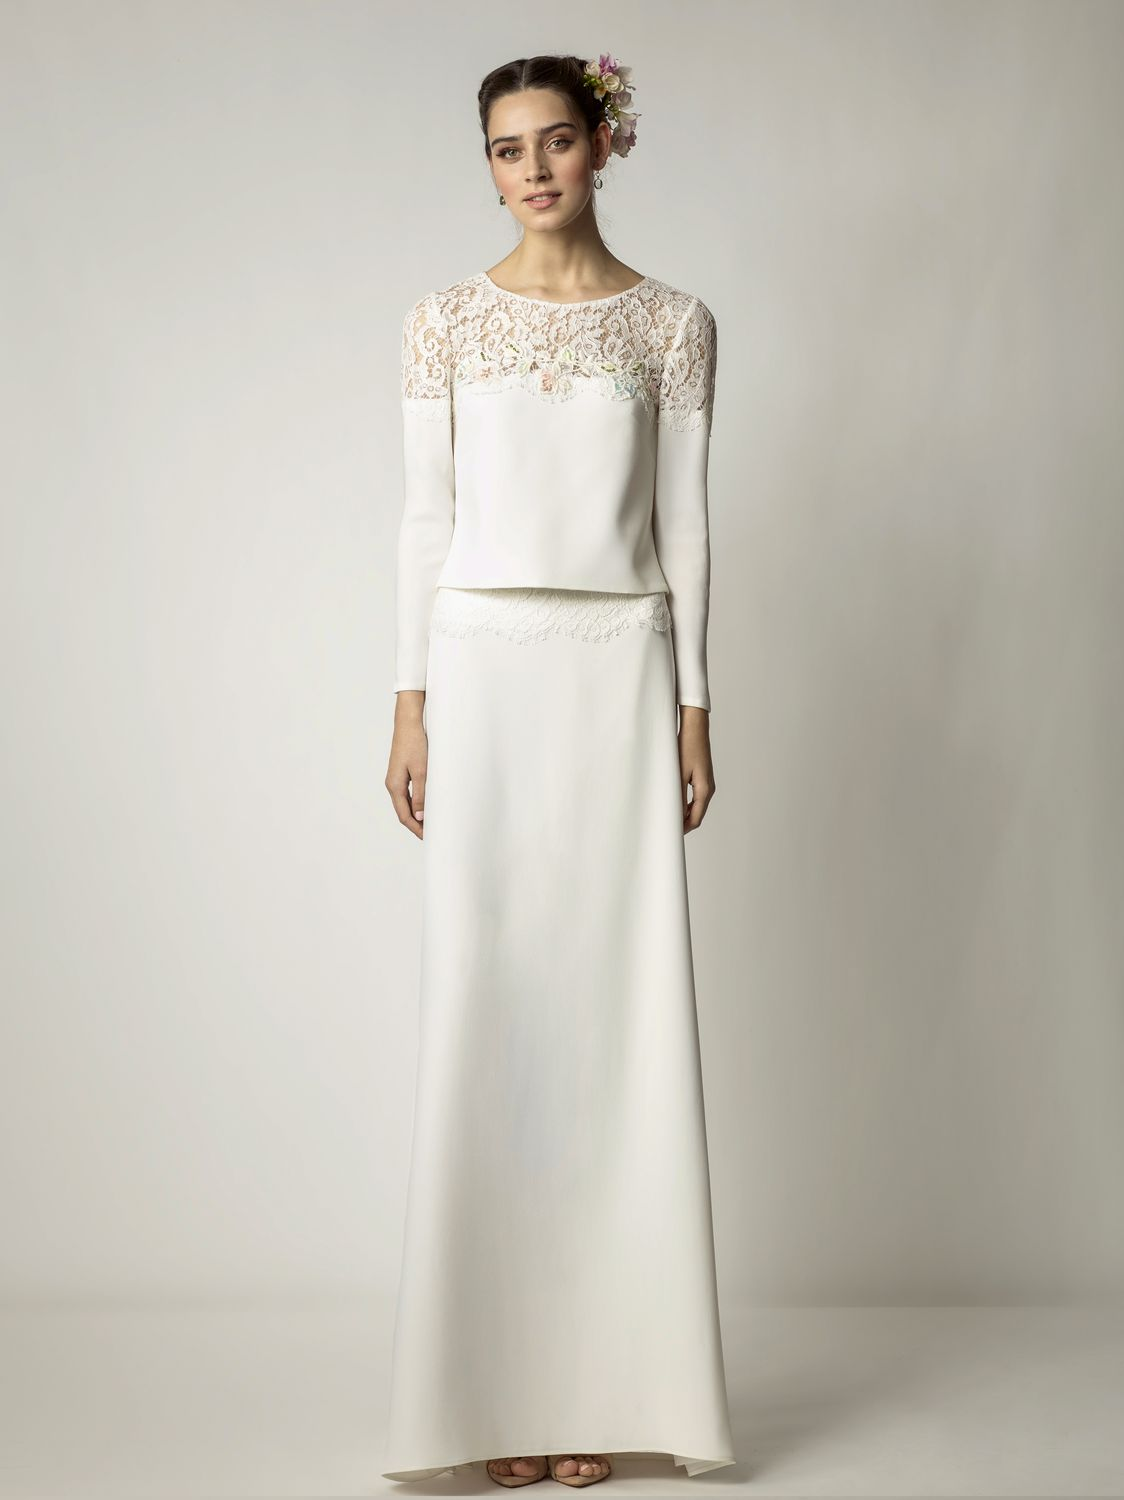 Robe mariage marie claire